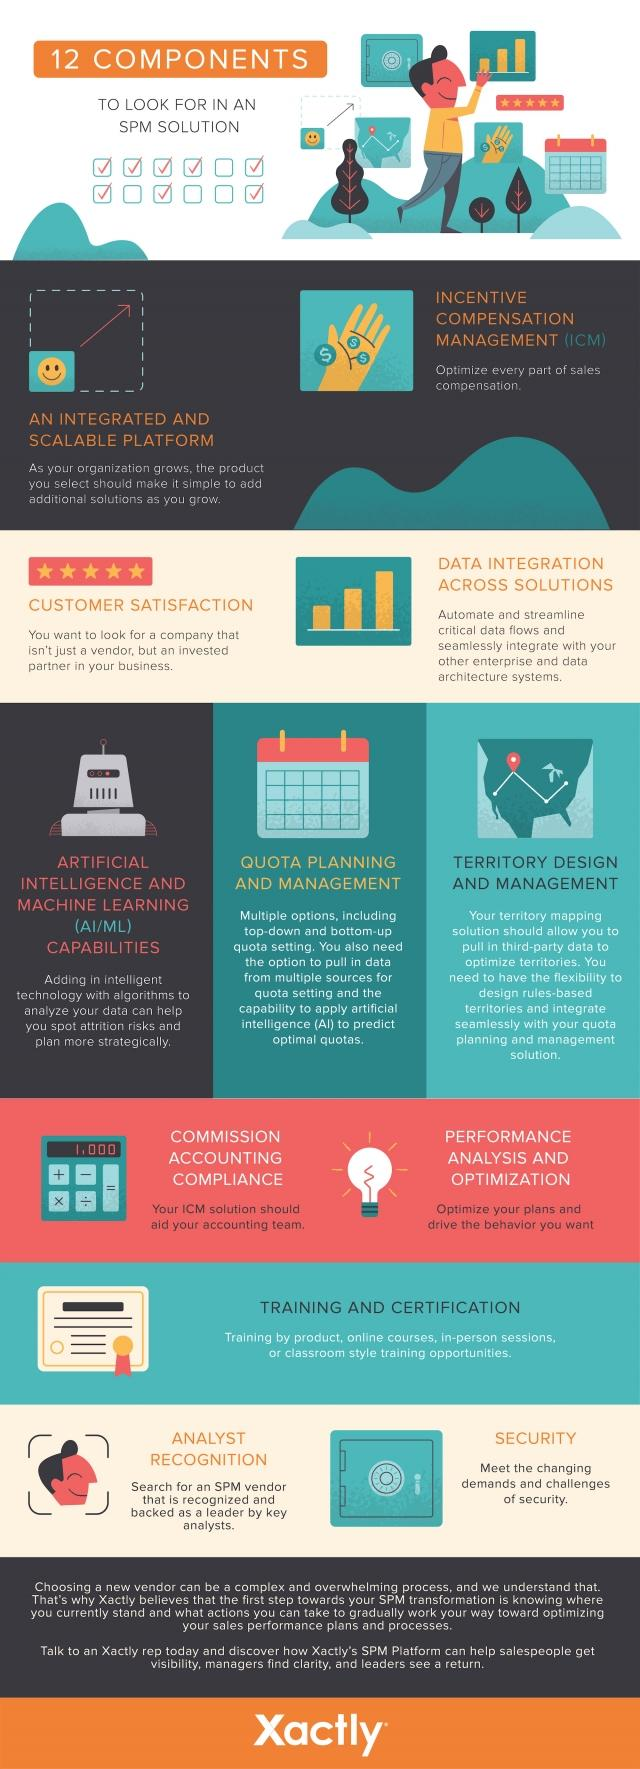 12 Components Xactly Infographic